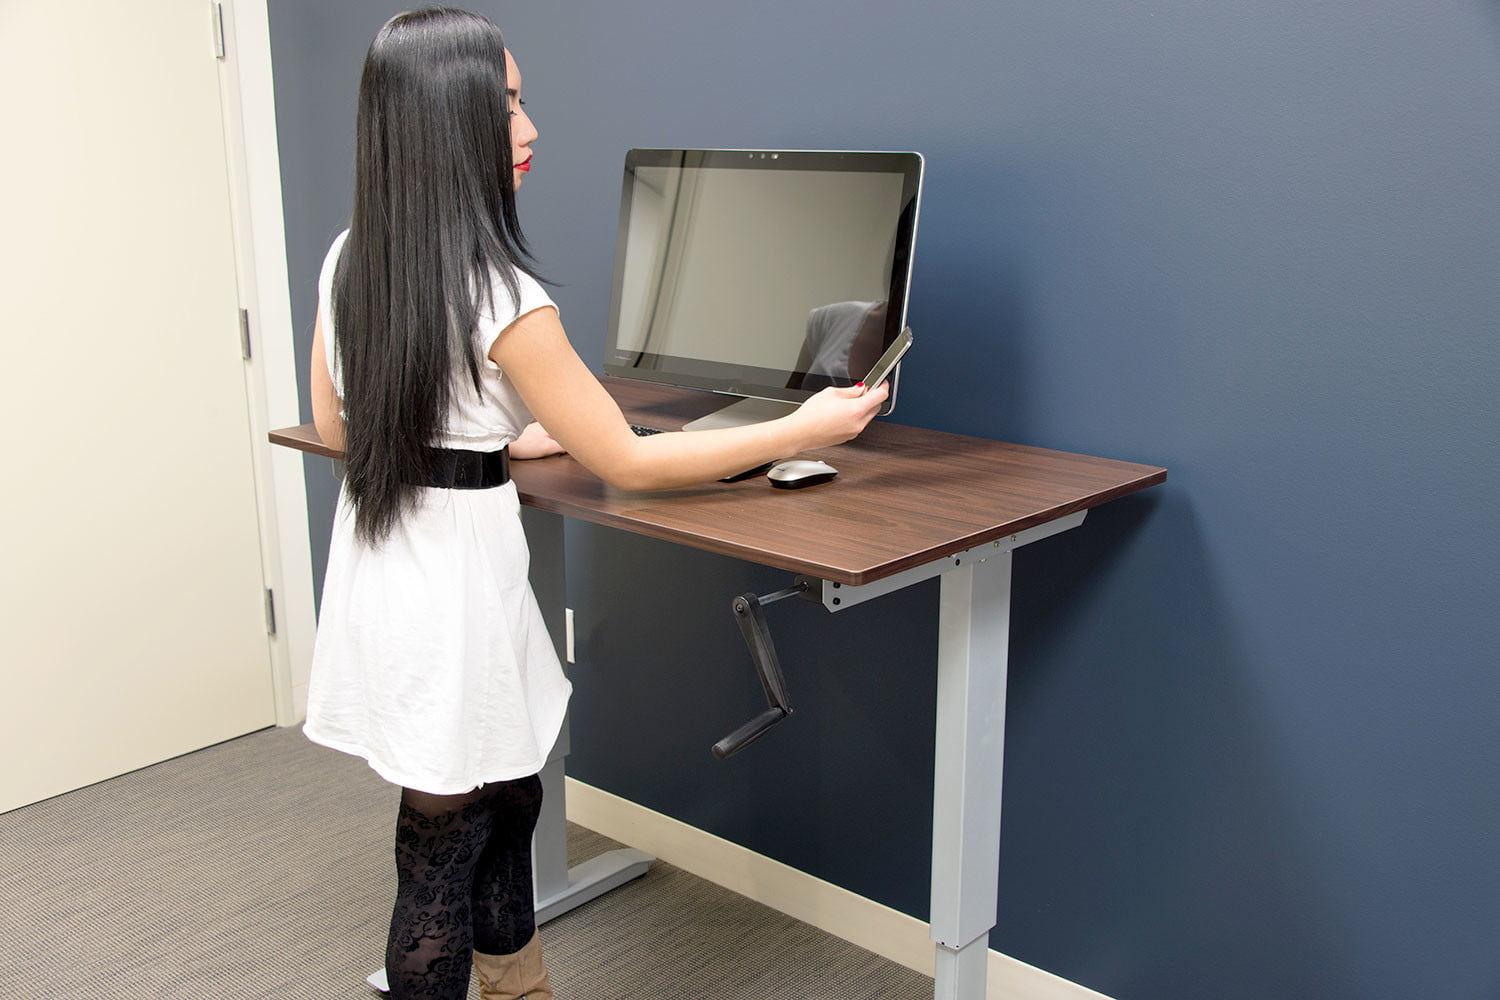 Rebel Up 2000 Standing Desk Review | Digital Trends